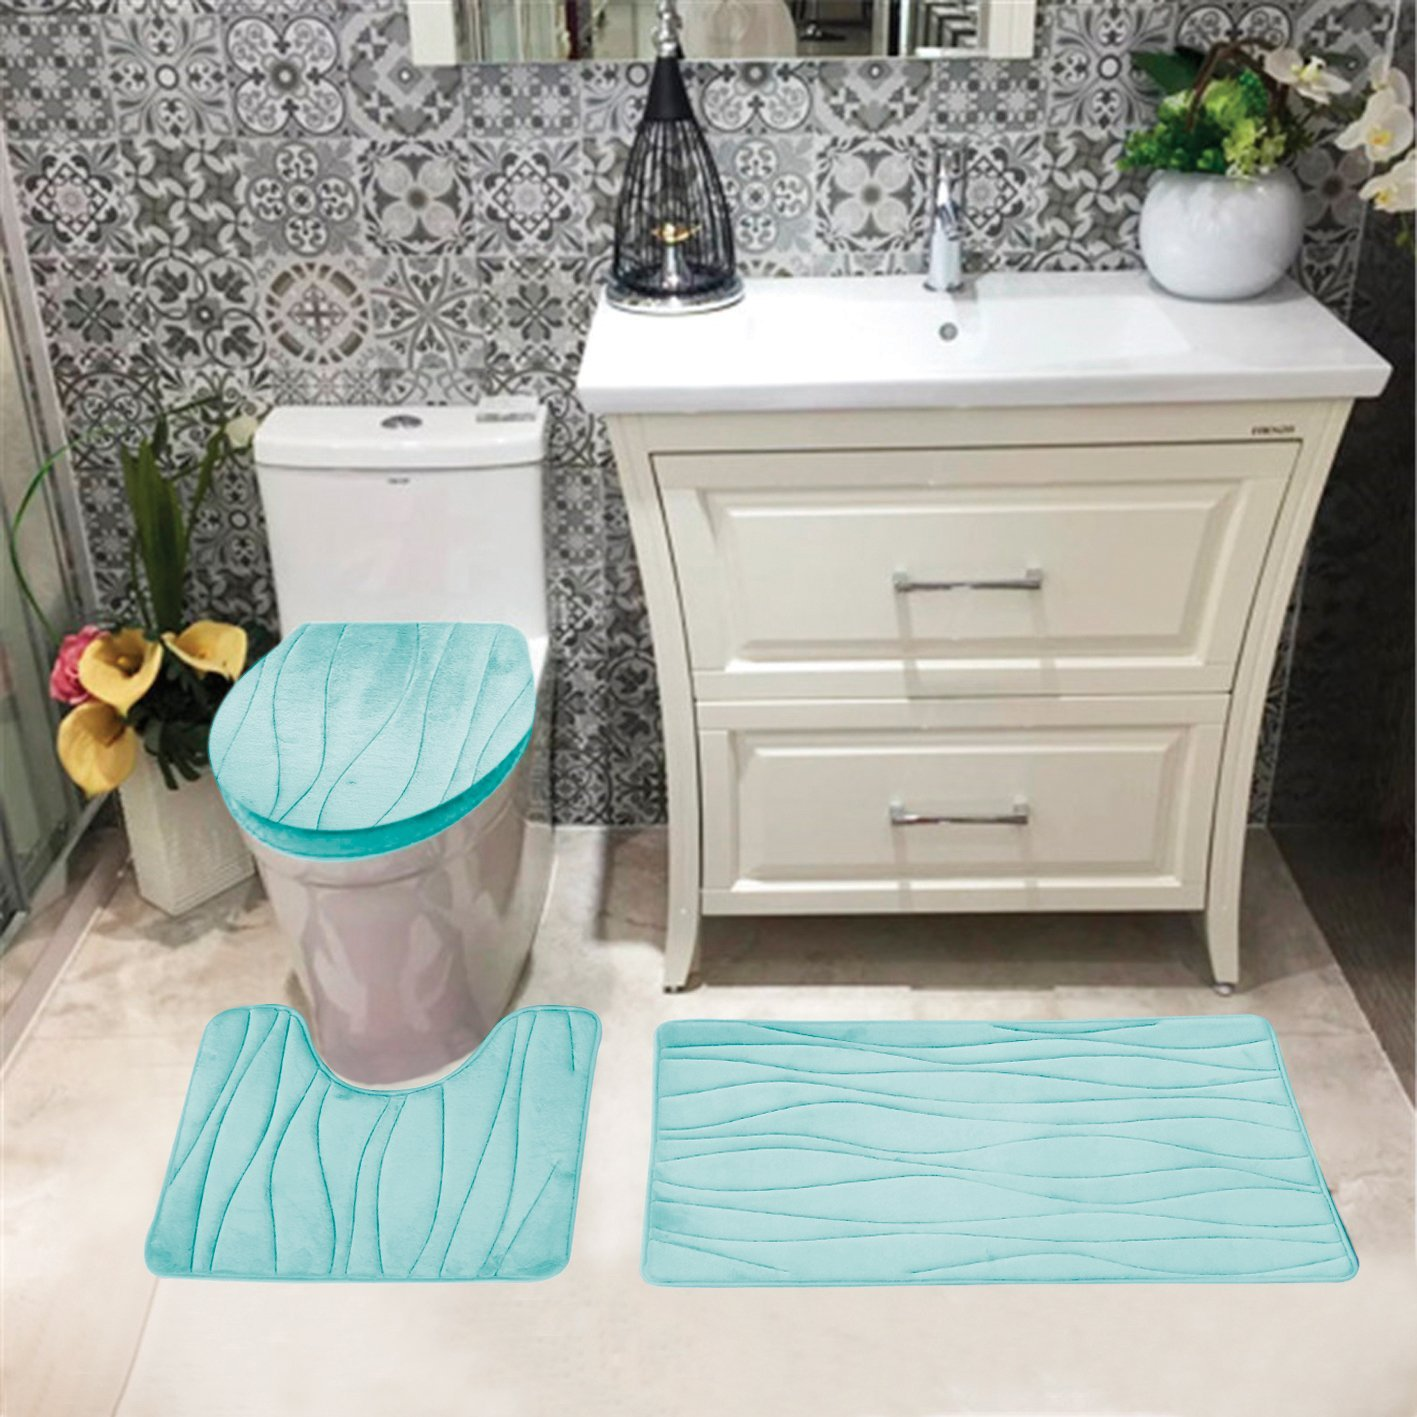 Connie Embossed Foam Plush 3pc Microfiber Bathroom Rug Set, Bath Mat, Contour Rug, Universal Lid Cover, Great Absobent With Anti Slip PVC Mesh Backing, Aqua